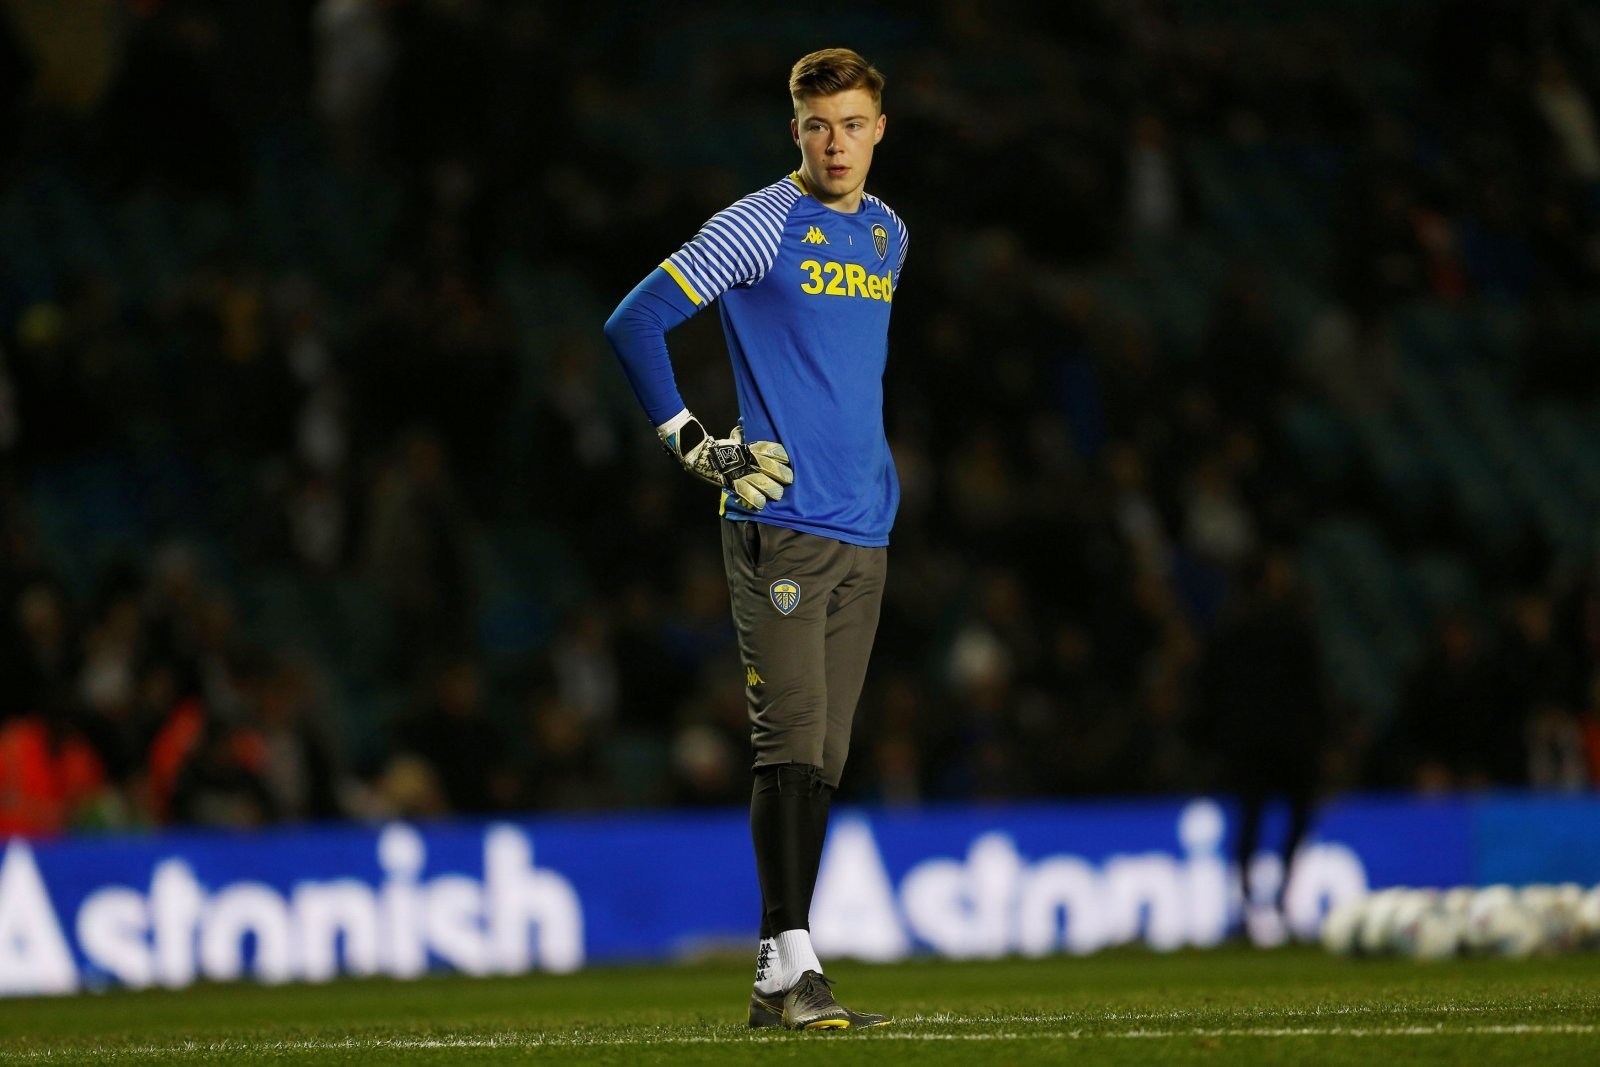 Bailey Peacock-Farrell could be the man to rescue Leeds United